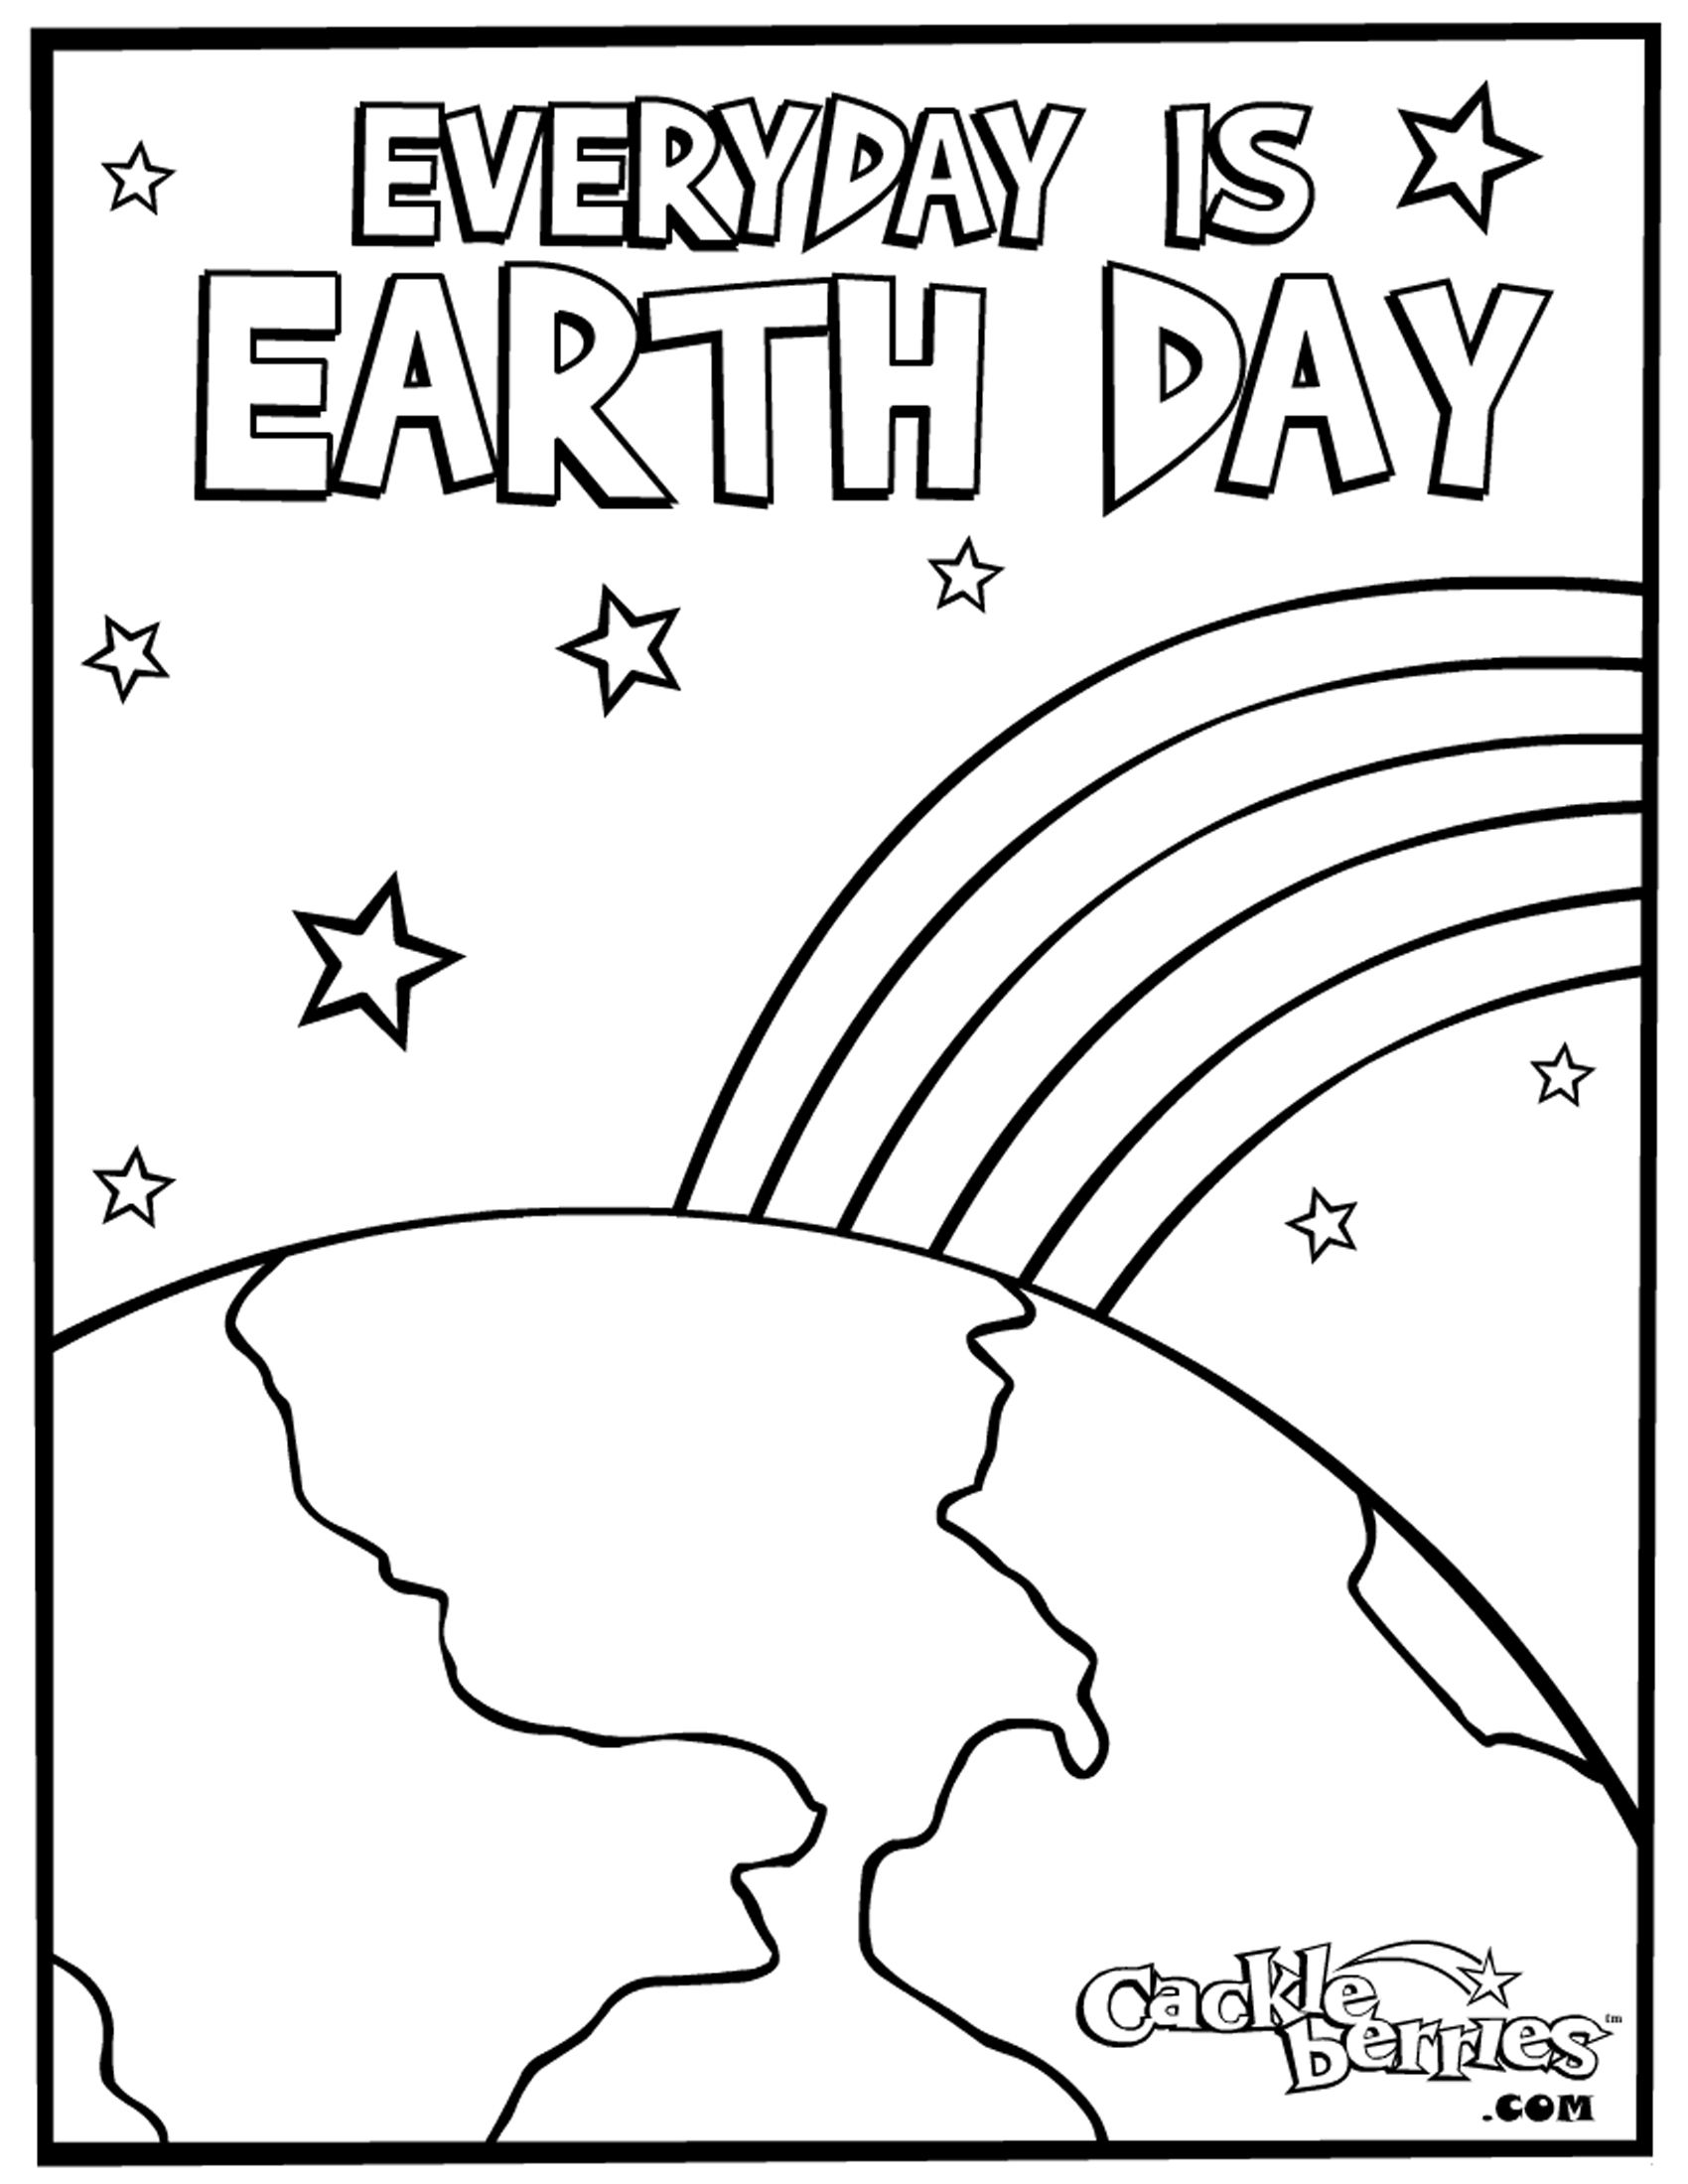 Day coloring pages to print ~ earth day coloring sheets - Pesquisa do Google | Día de la ...